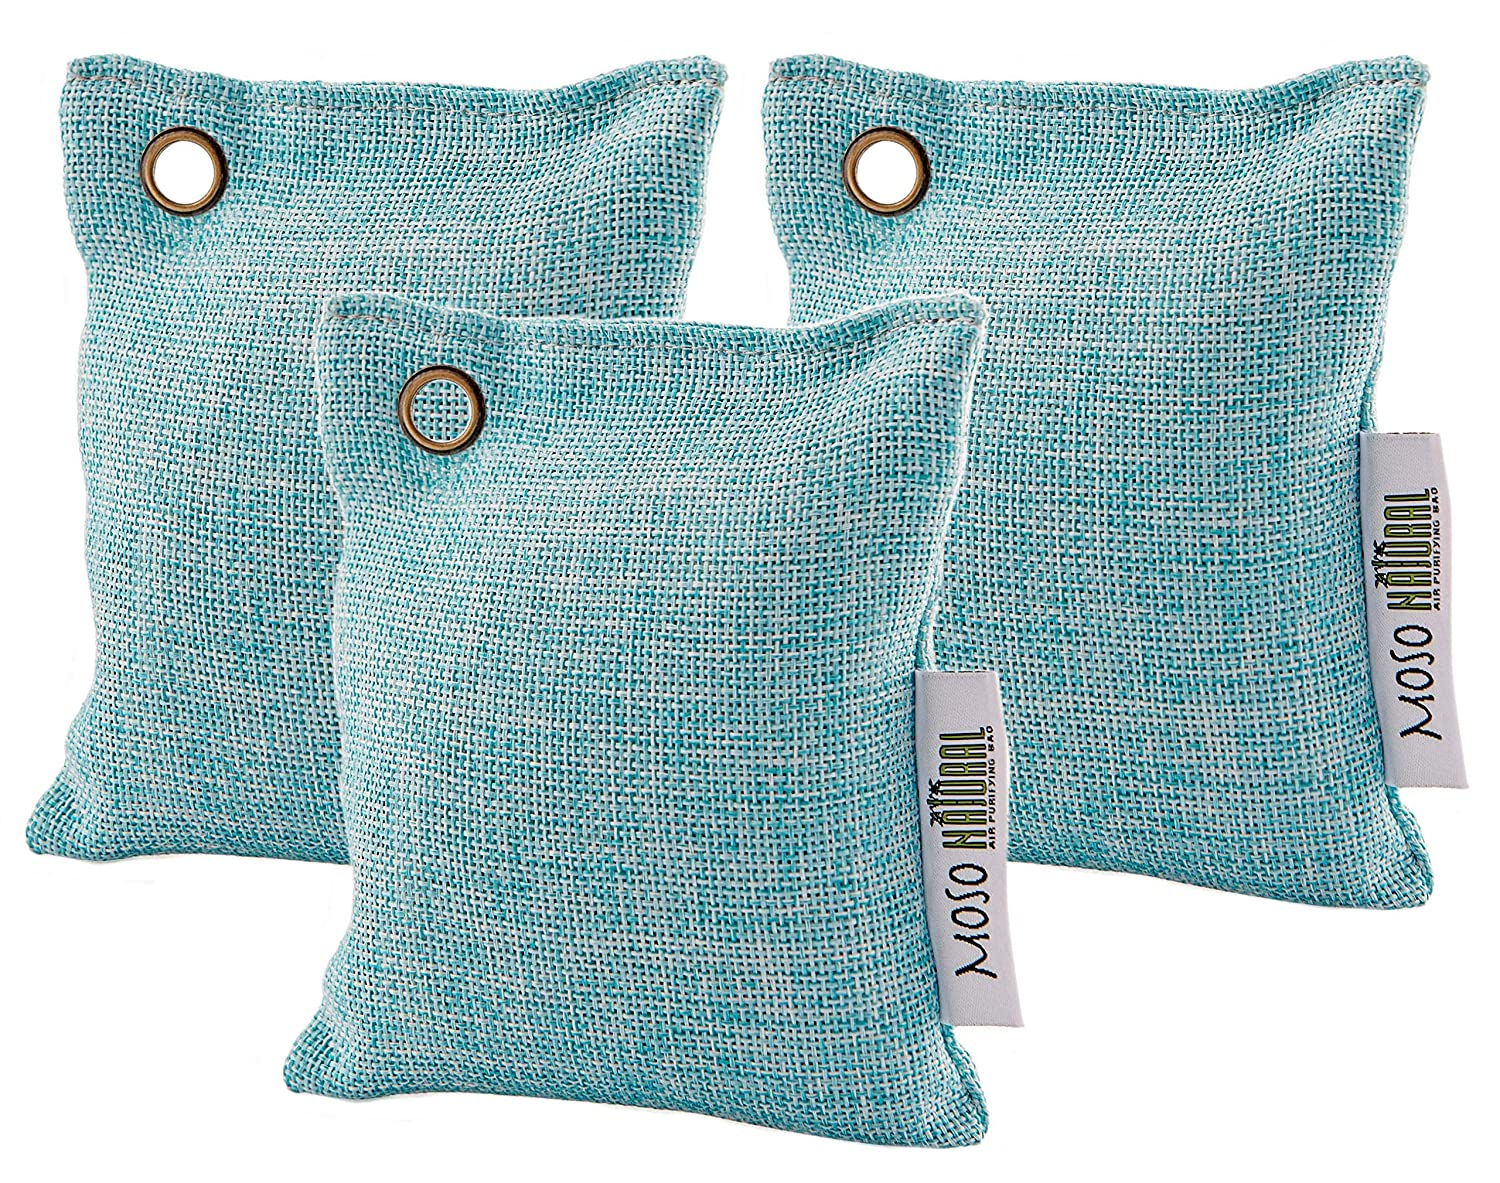 3 pack Moso Natural Air Purifying Bag Deodorizers. Refrigerator Odor Eliminator Absorbs and Removes Fridge and Freezer Odors SYNCHKG069701